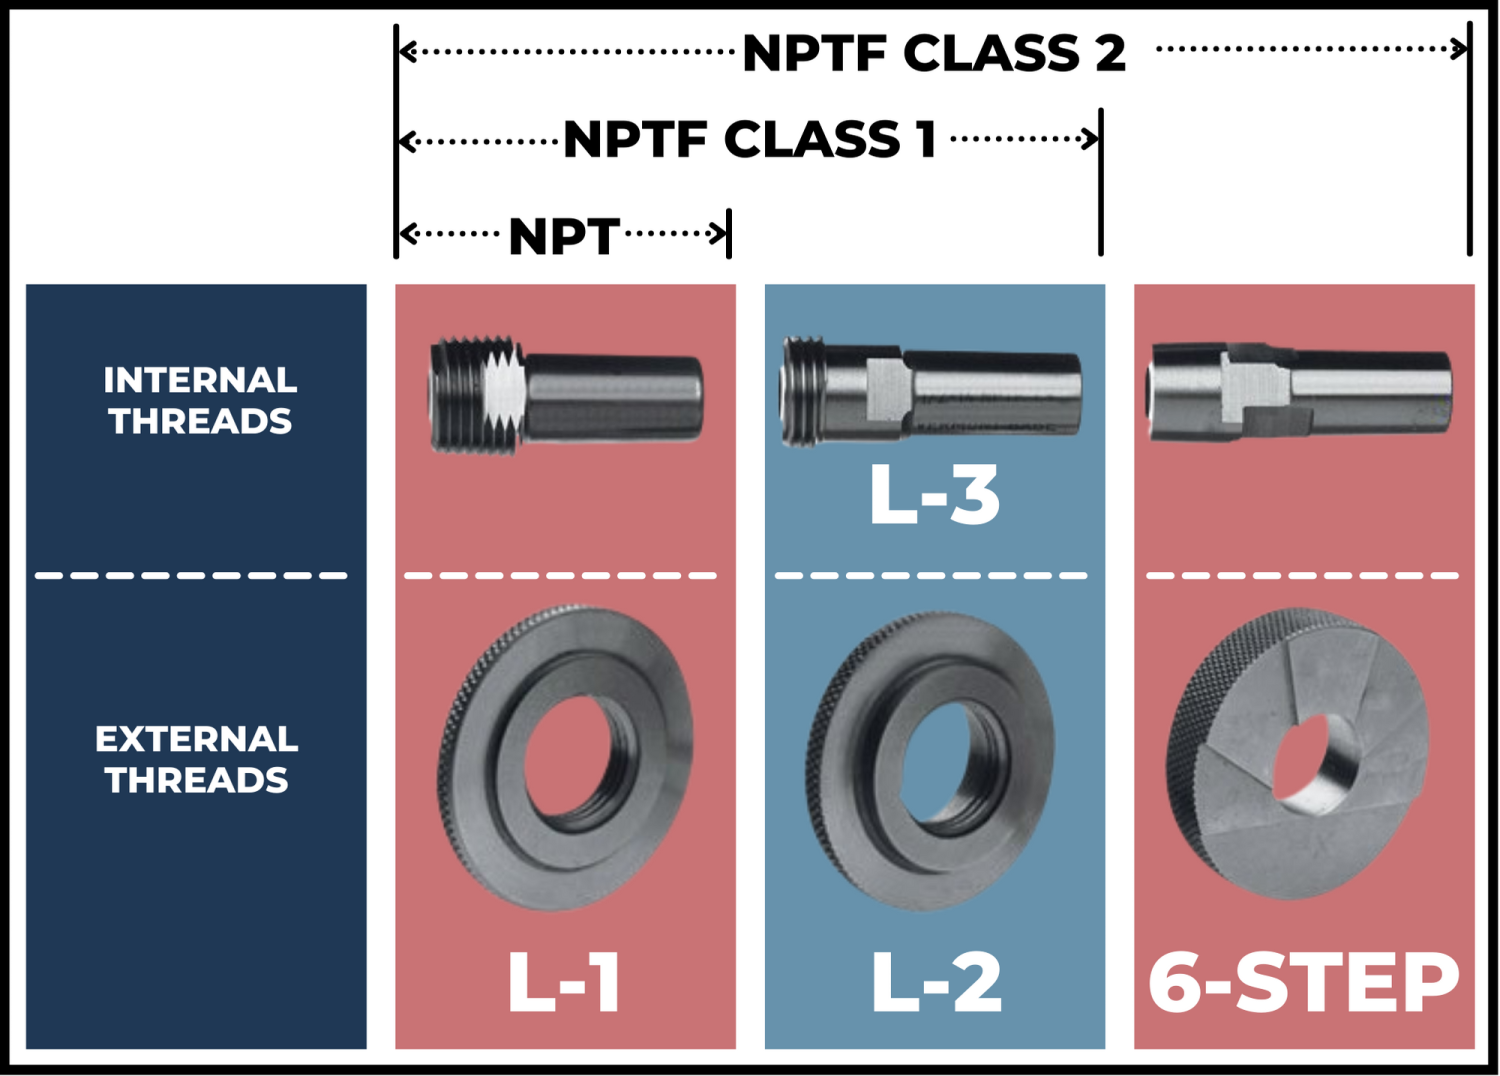 Hand gaging of NPT Thread Infographic